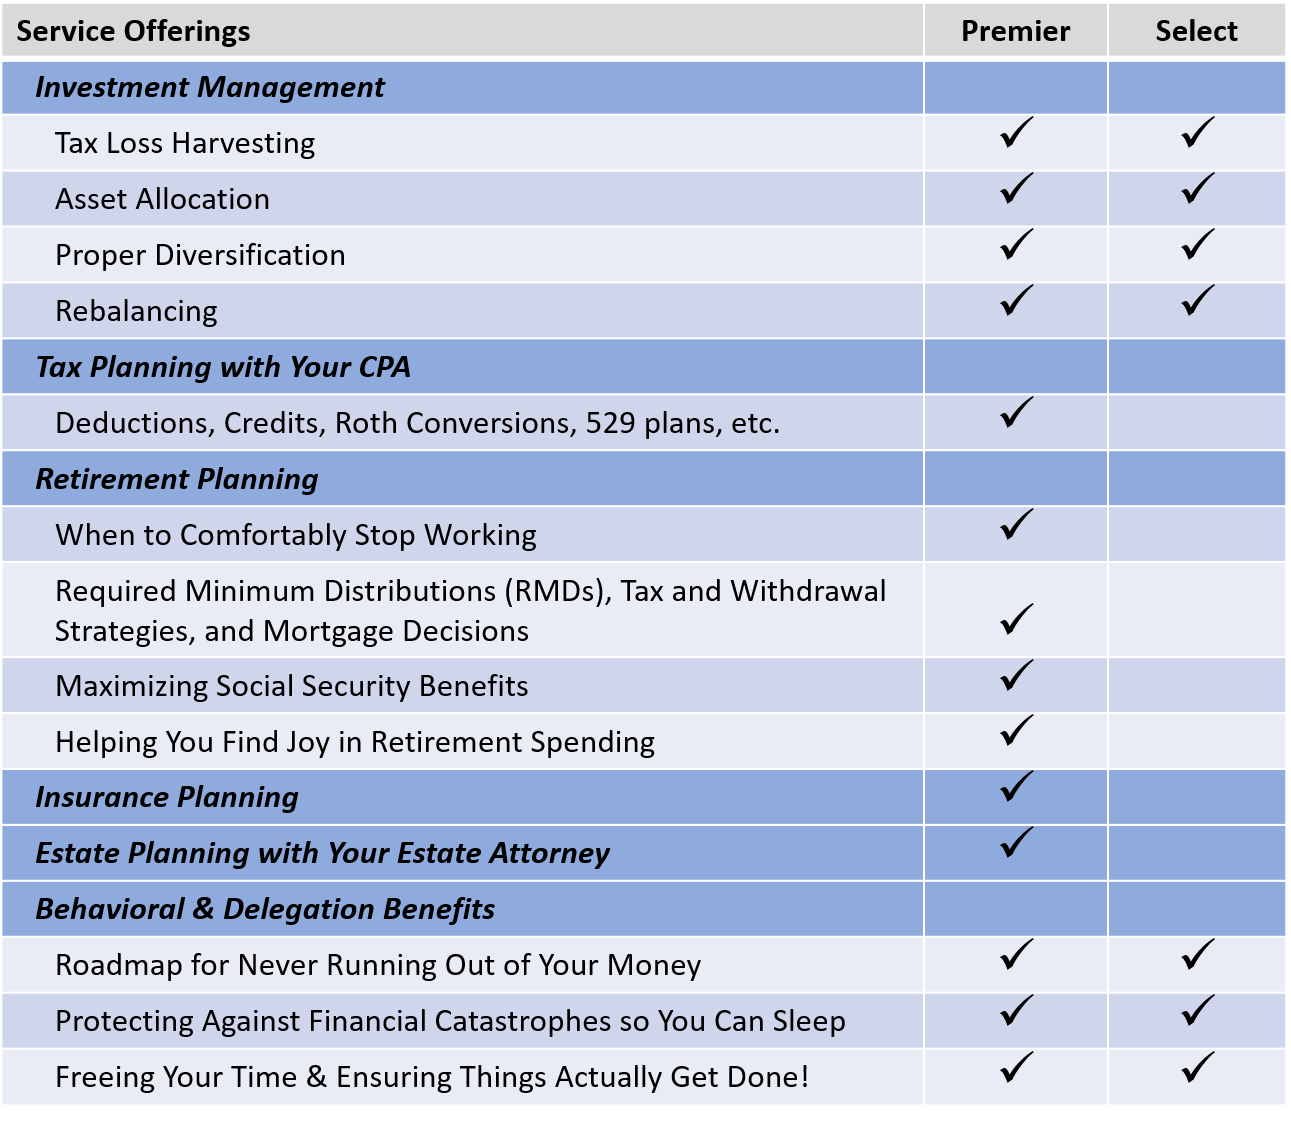 Services Chart.png